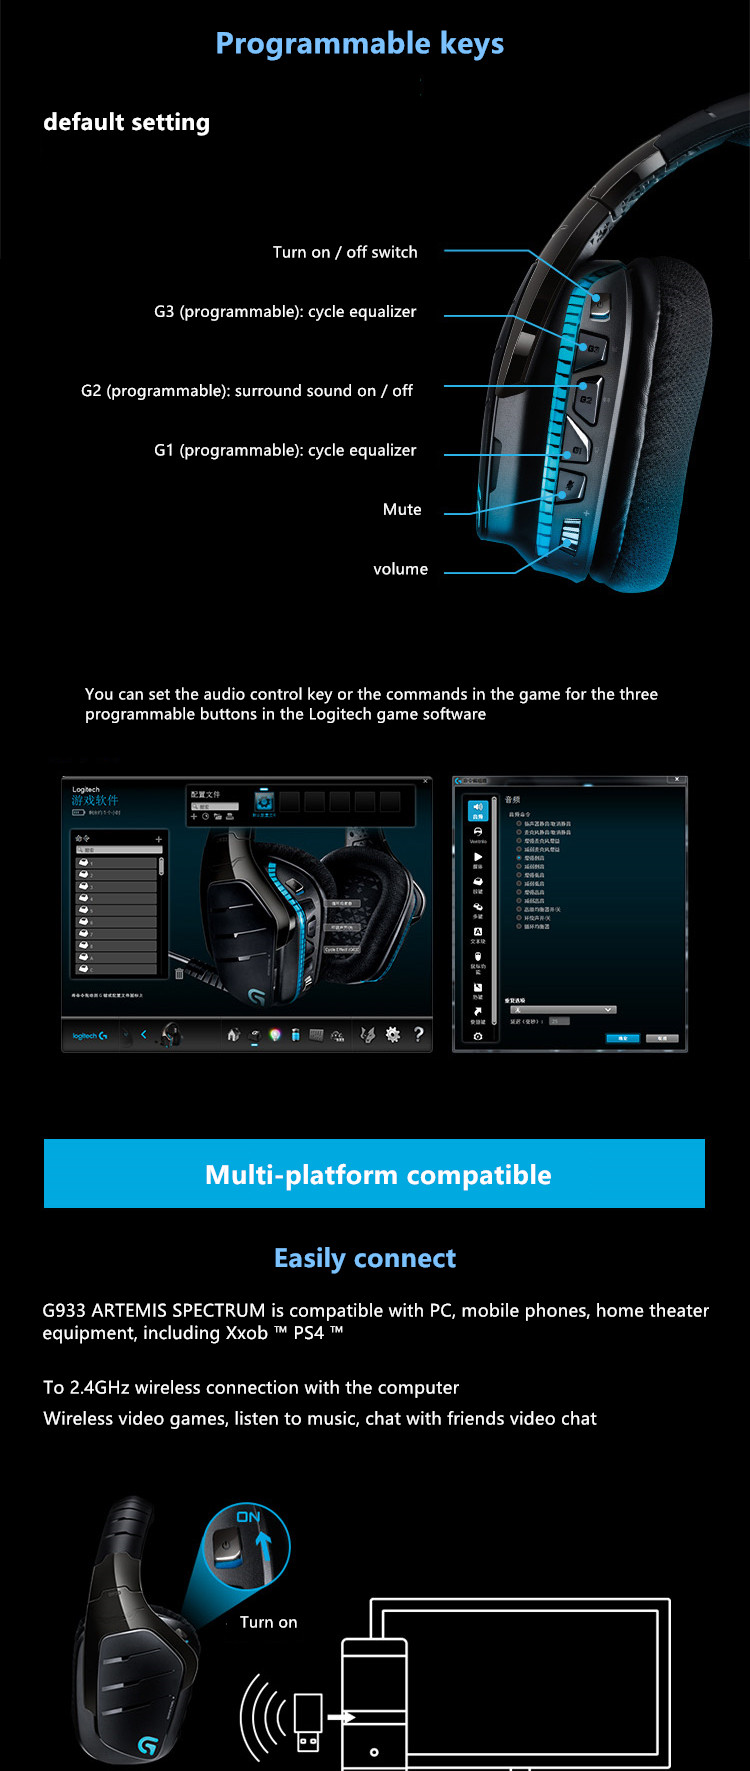 US $227 05 5% OFF|Logitech G933 Artemis Spectrum Wireless 7 1 Surround  Gaming Headset-in Mouse Pads from Computer & Office on Aliexpress com |  Alibaba